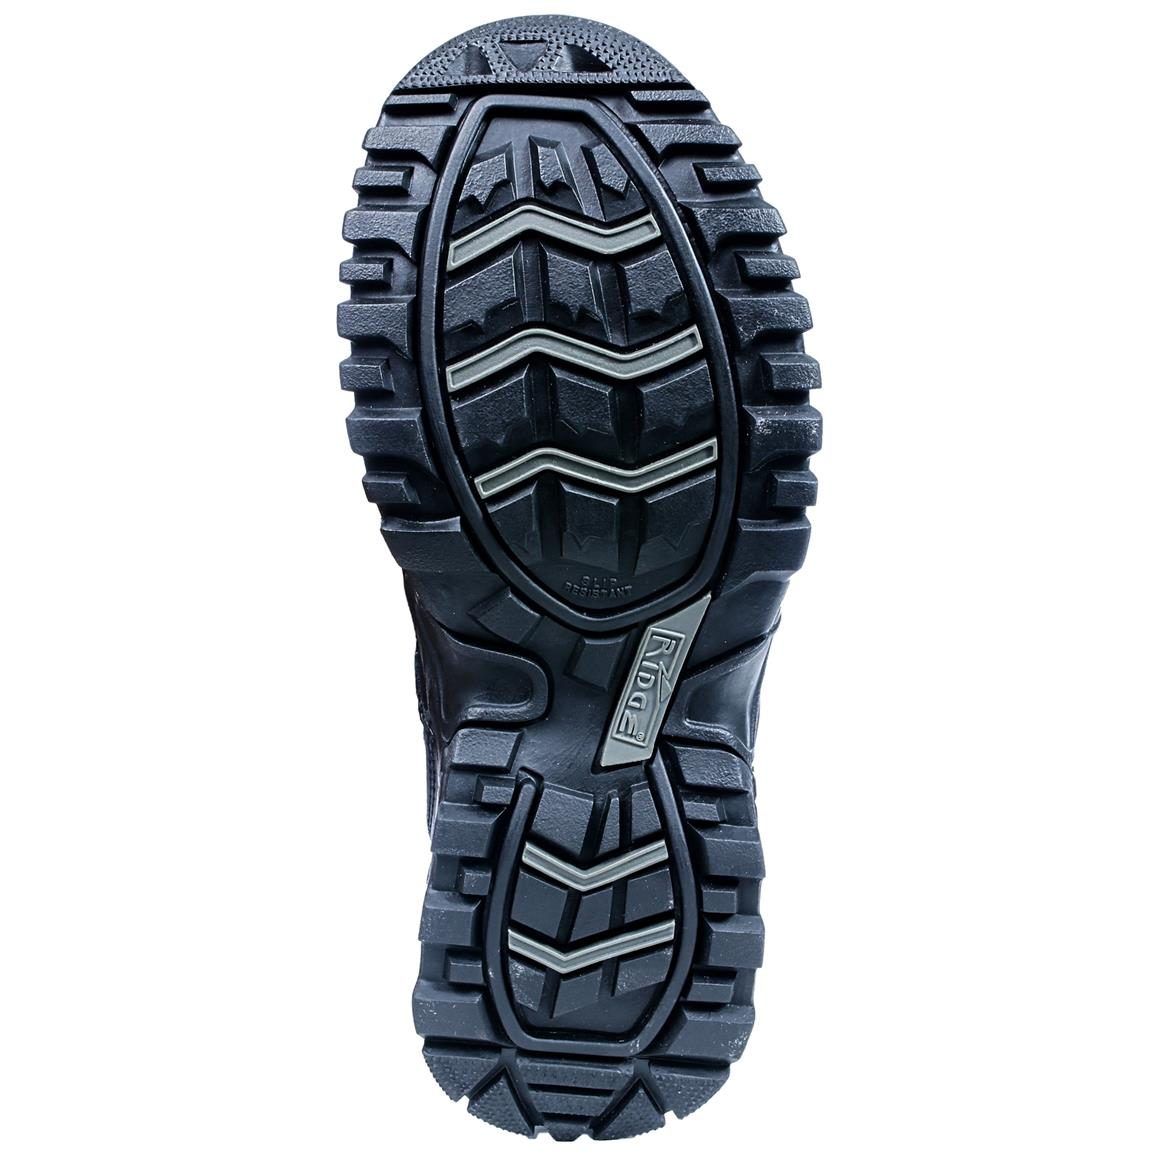 1A carbon rubber outsole delivers solid traction to keep you upright